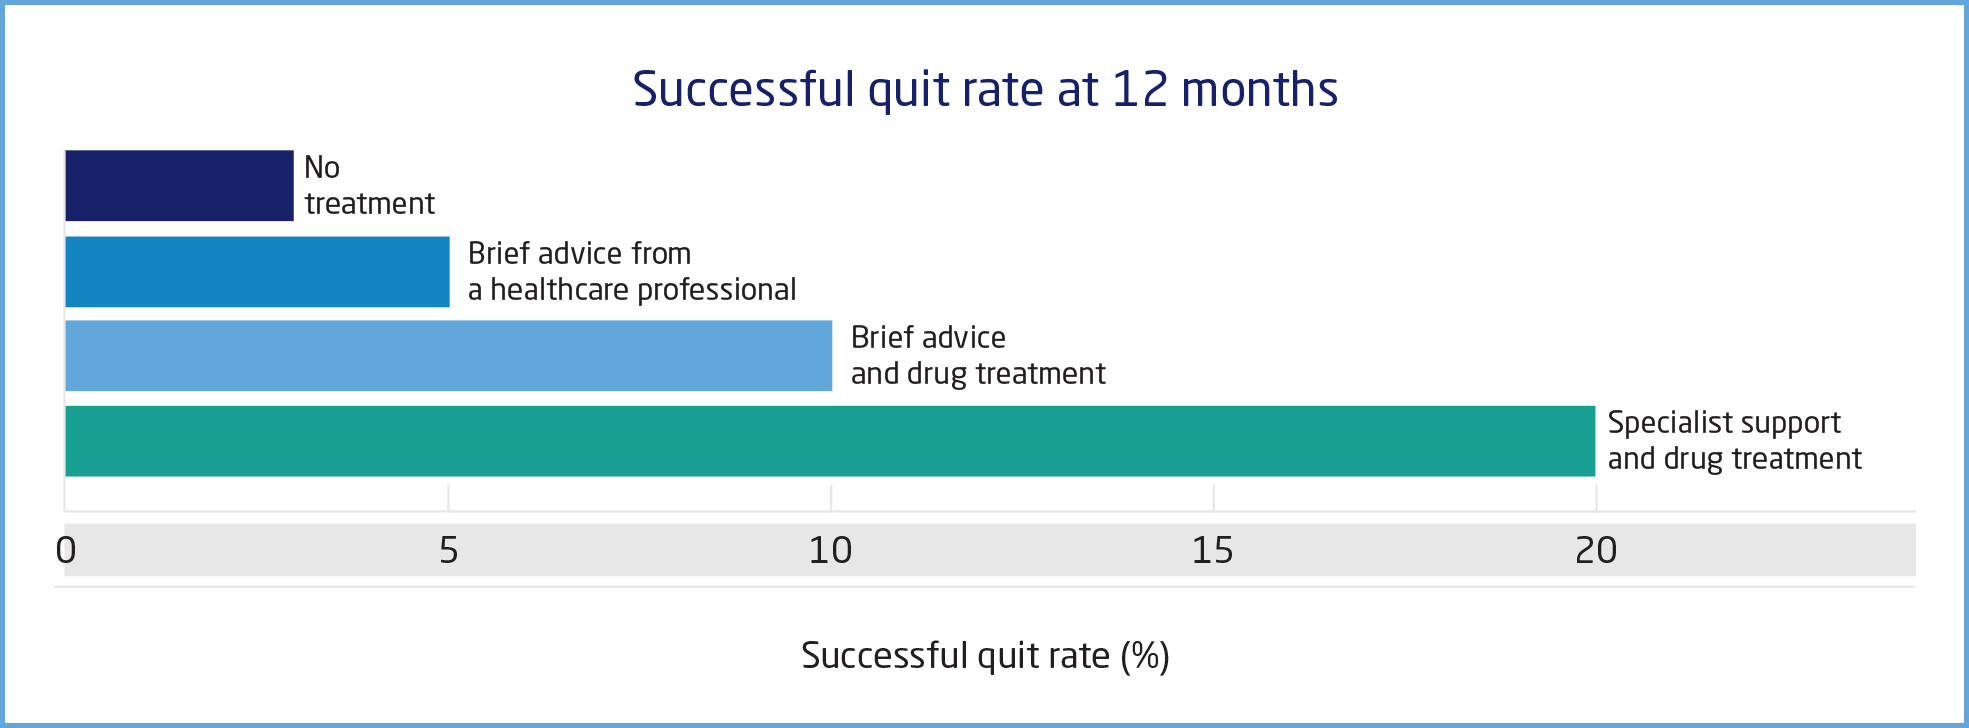 a graphical representation about Successful quit rate at 12 months